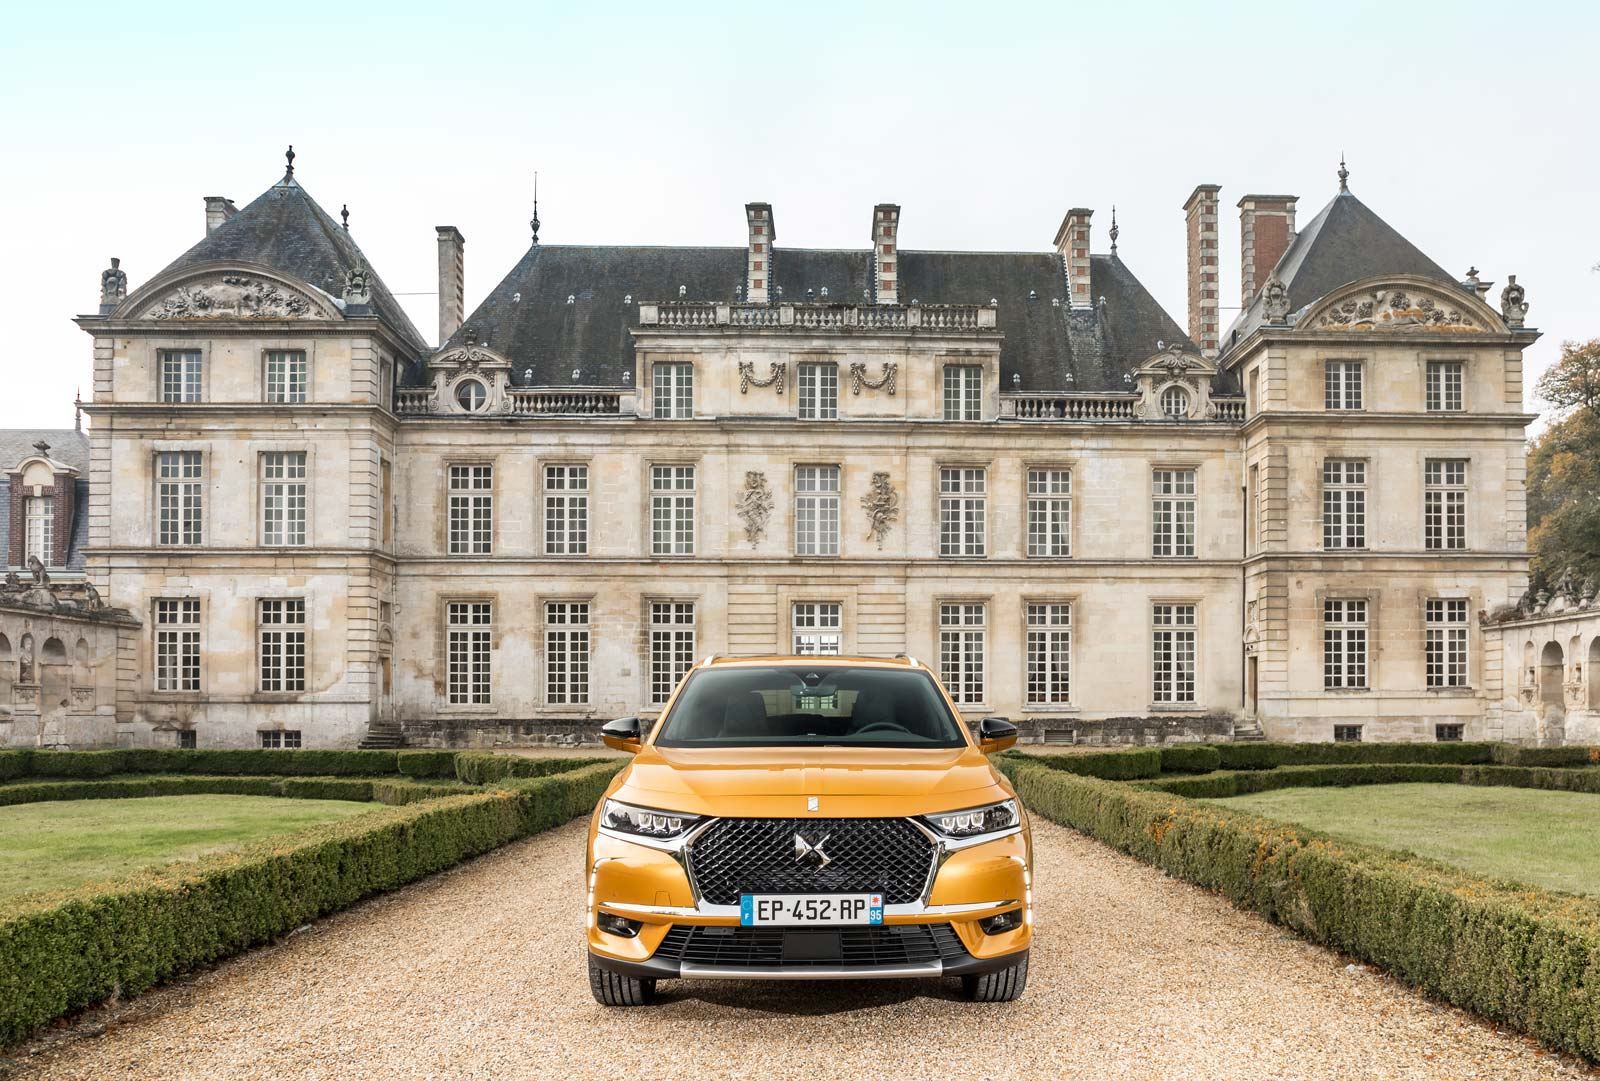 Test Drive and Review of the DS 7 CROSSBACK SUV in Paris